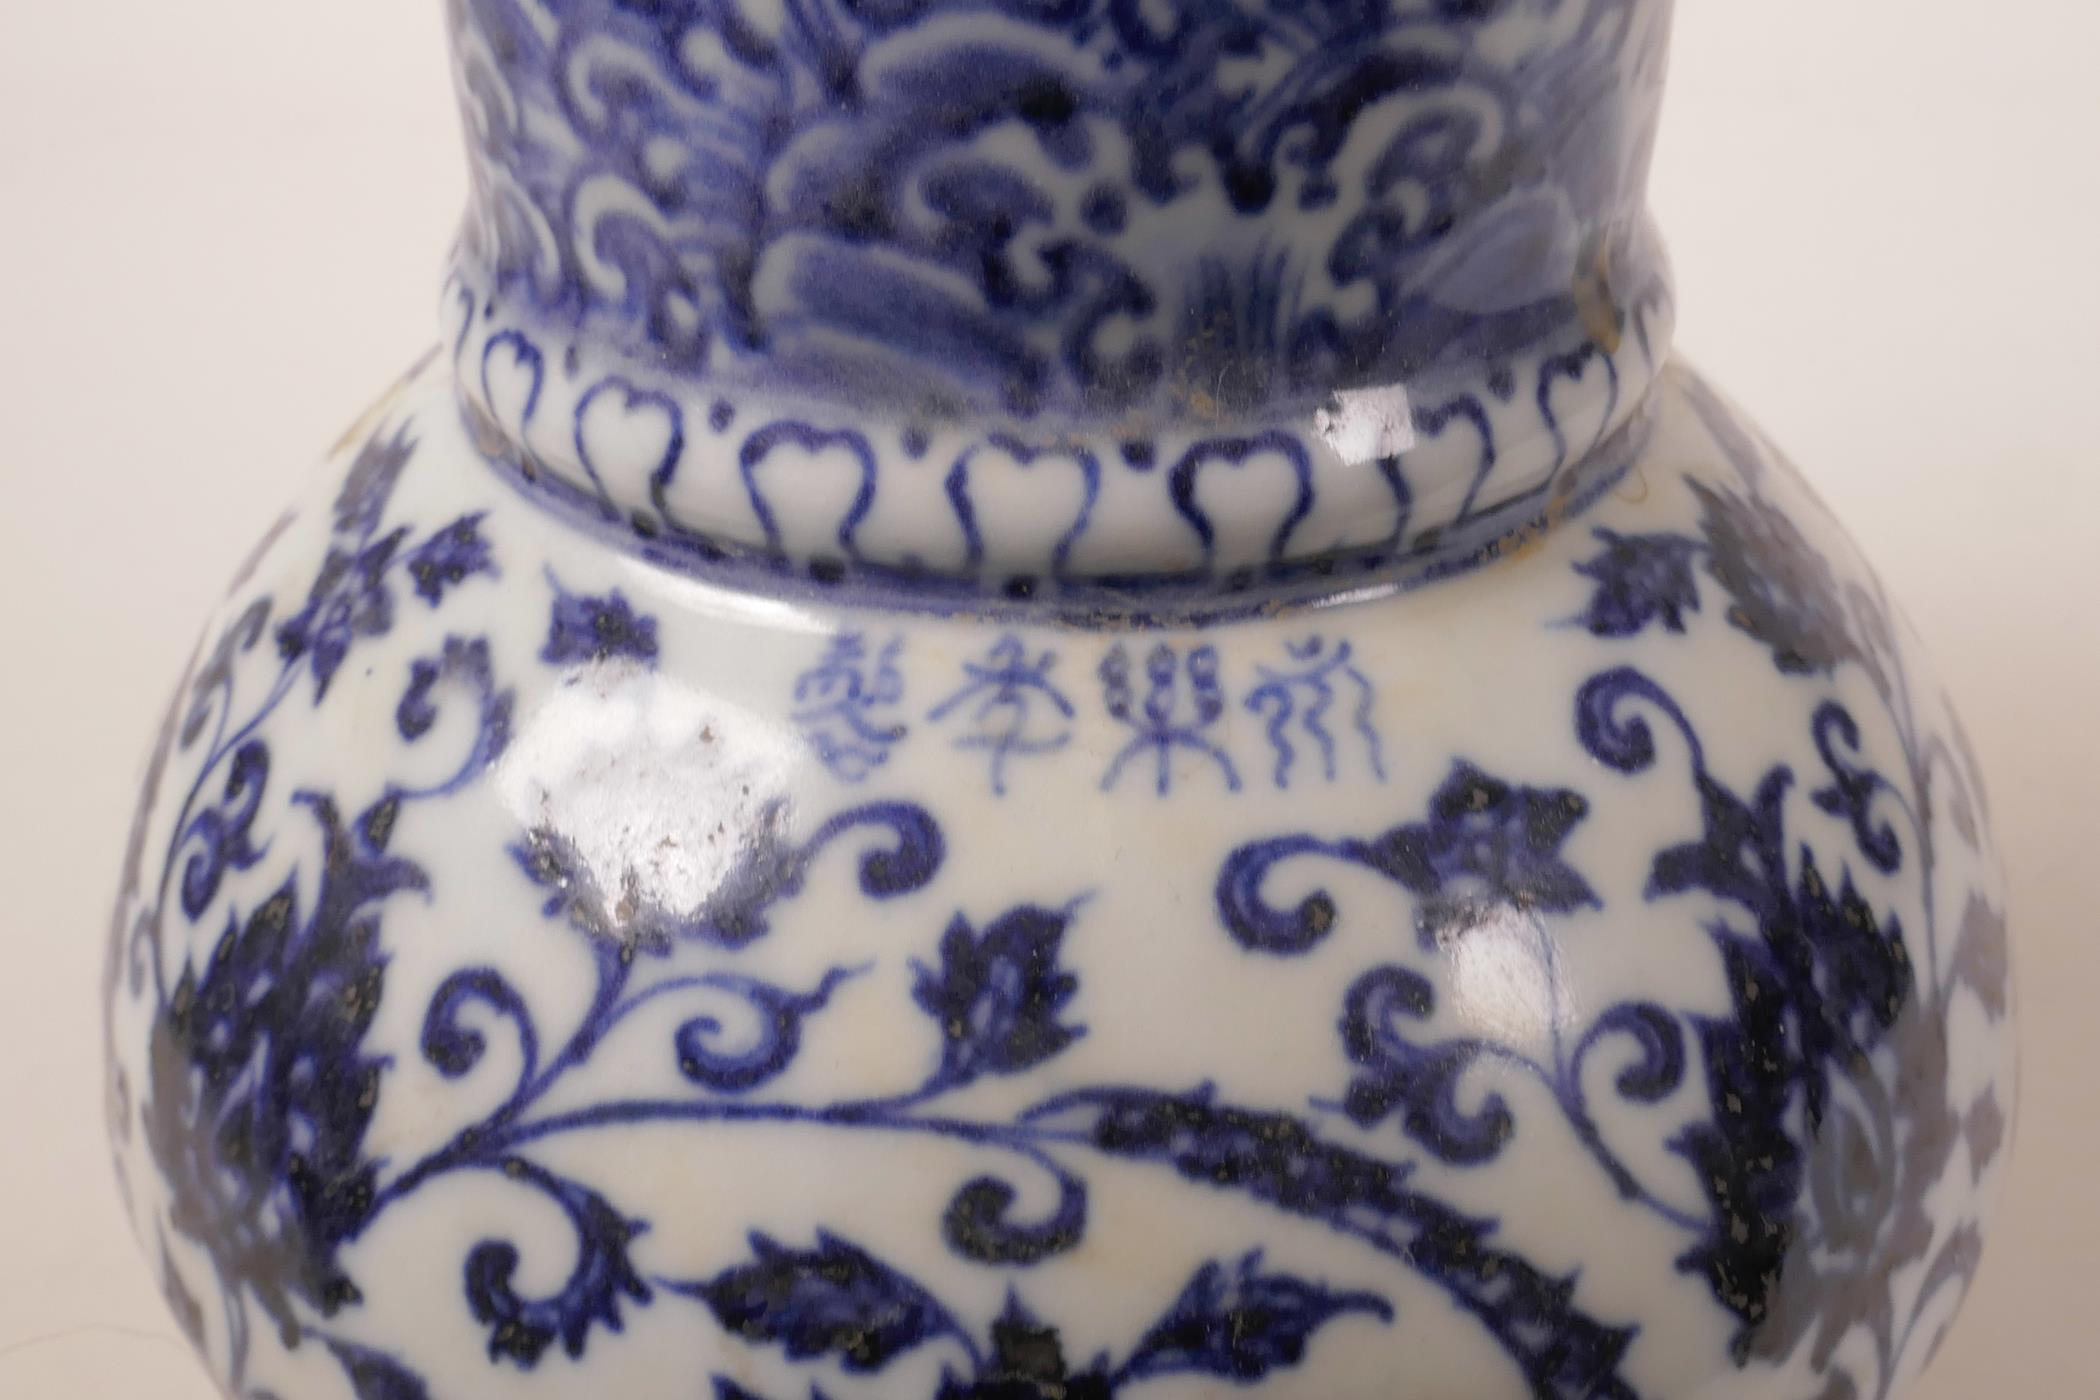 Lot 50 - A Chinese blue and white porcelain wine jug with scrolling lotus flower decoration, 4 character mark